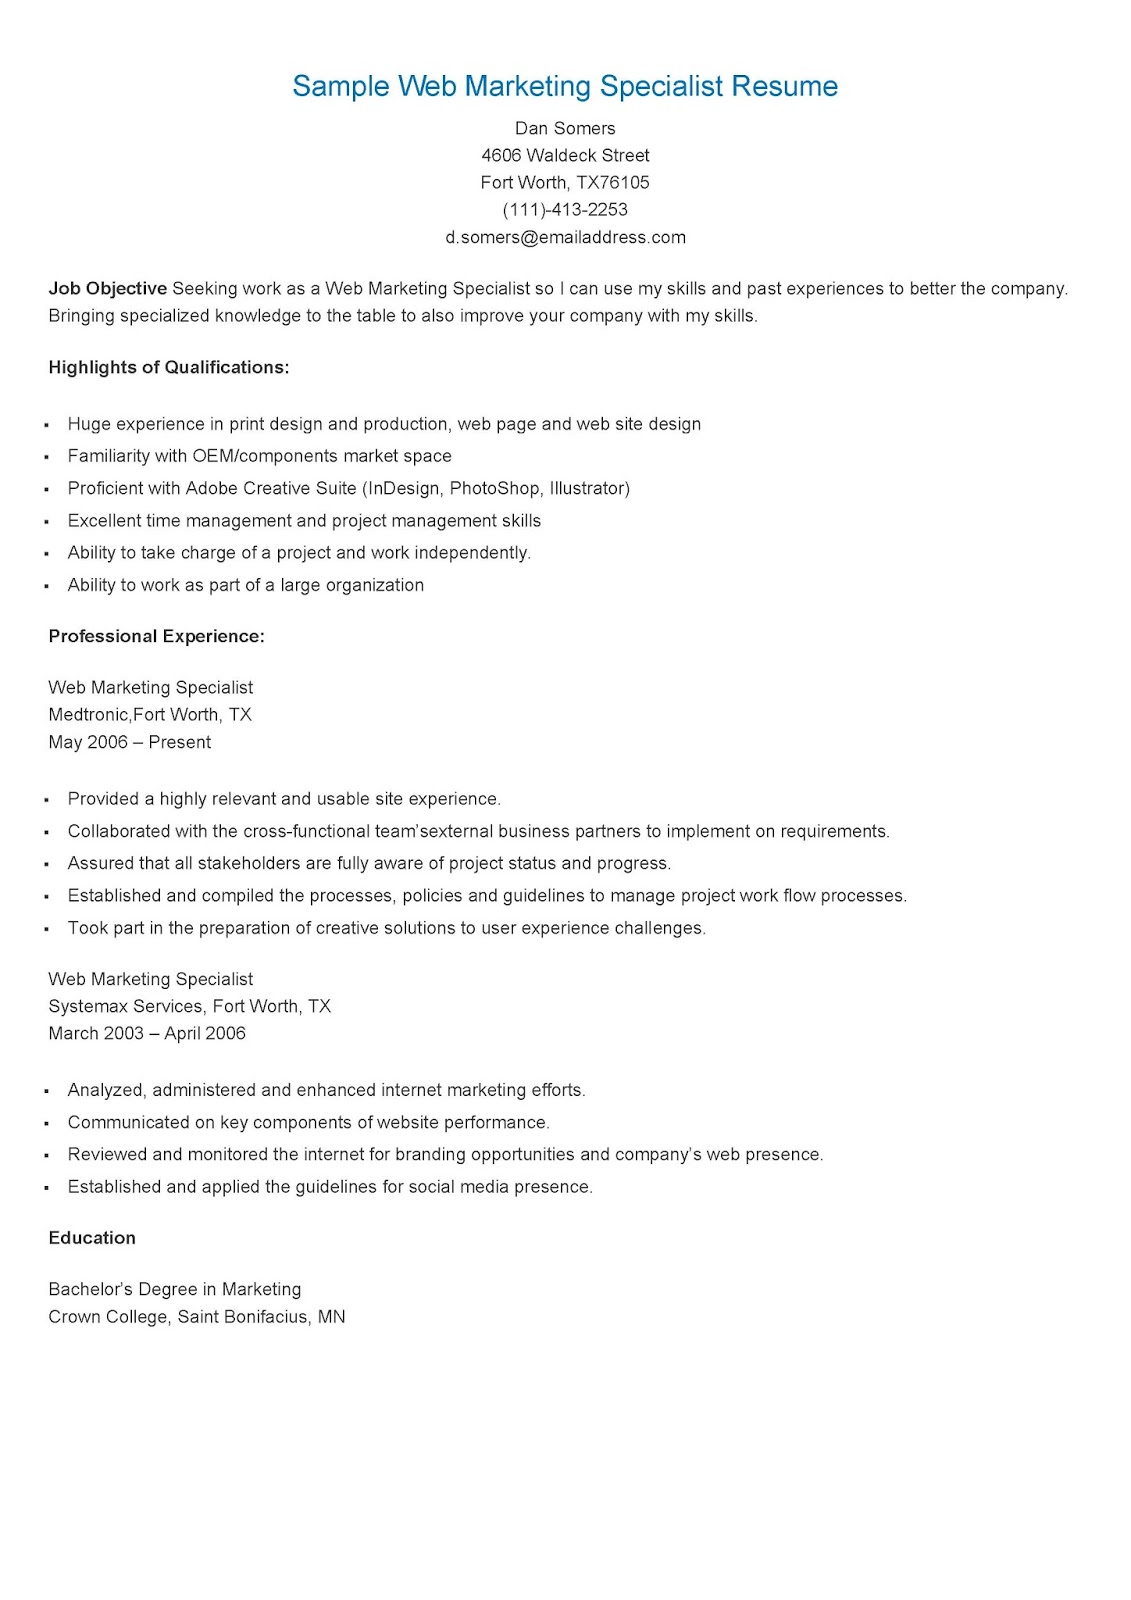 Resume Samples Sample Web Marketing Specialist Resume